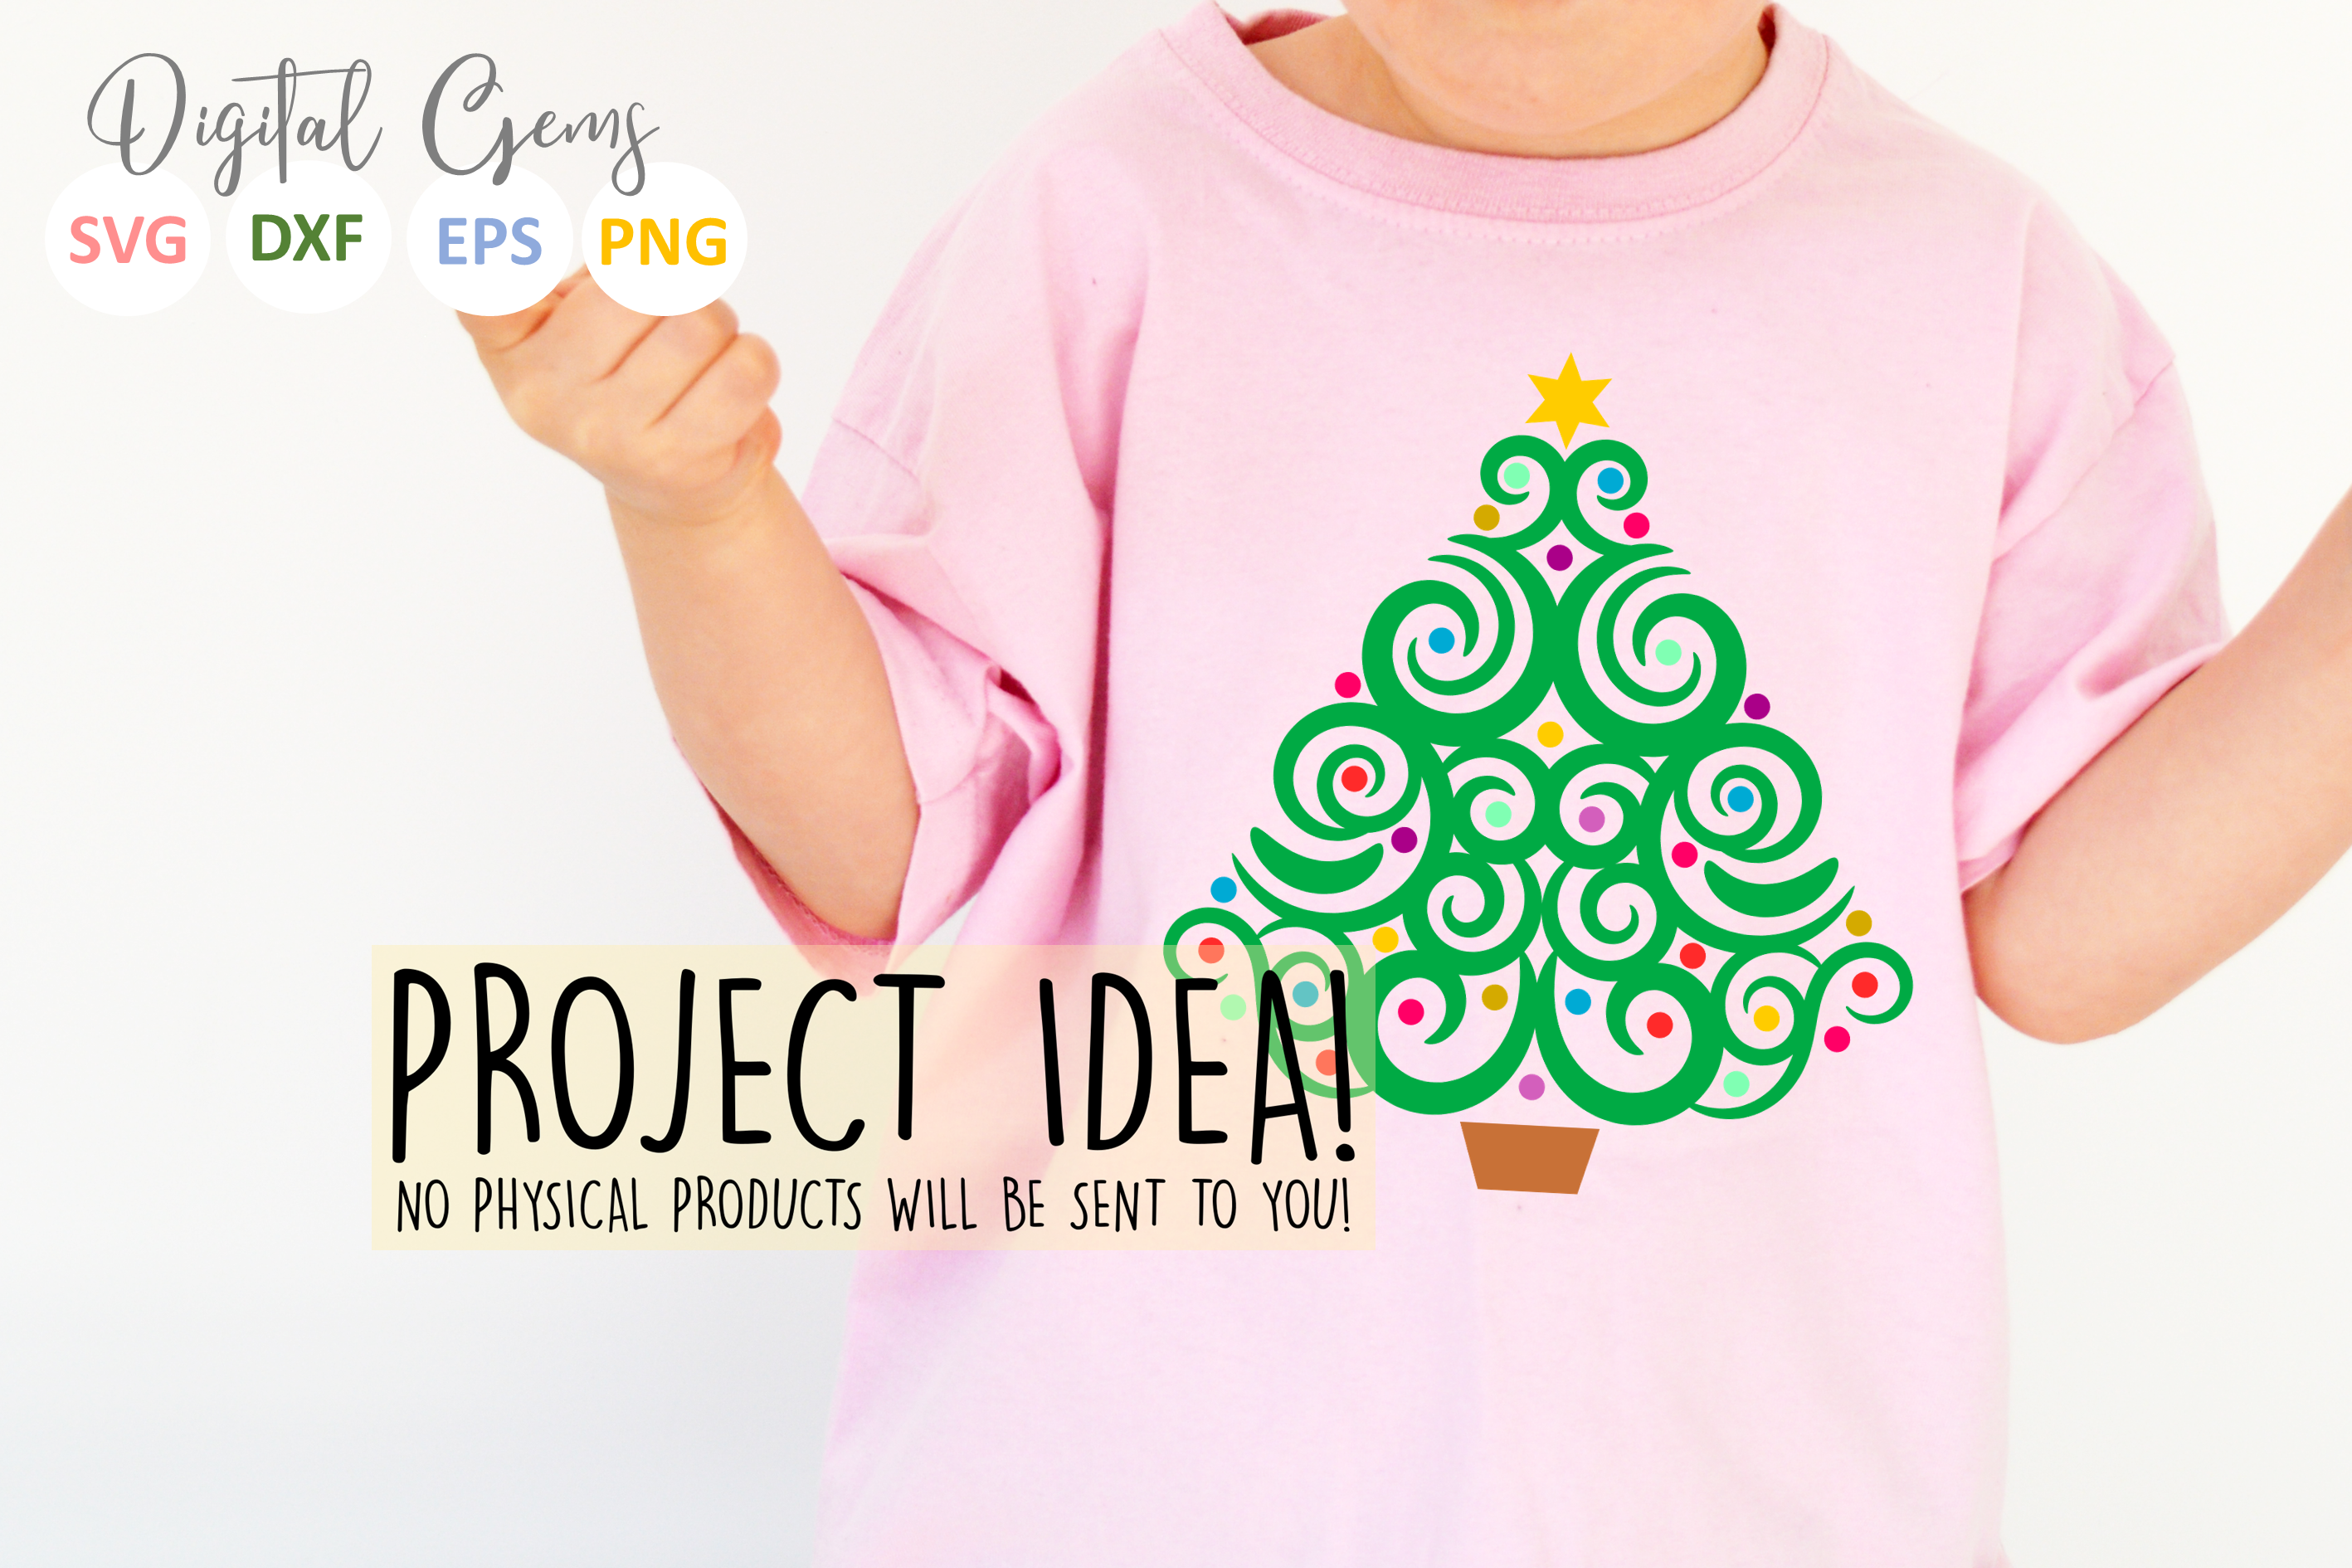 Christmas tree SVG / EPS / DXF / PNG Files example image 2